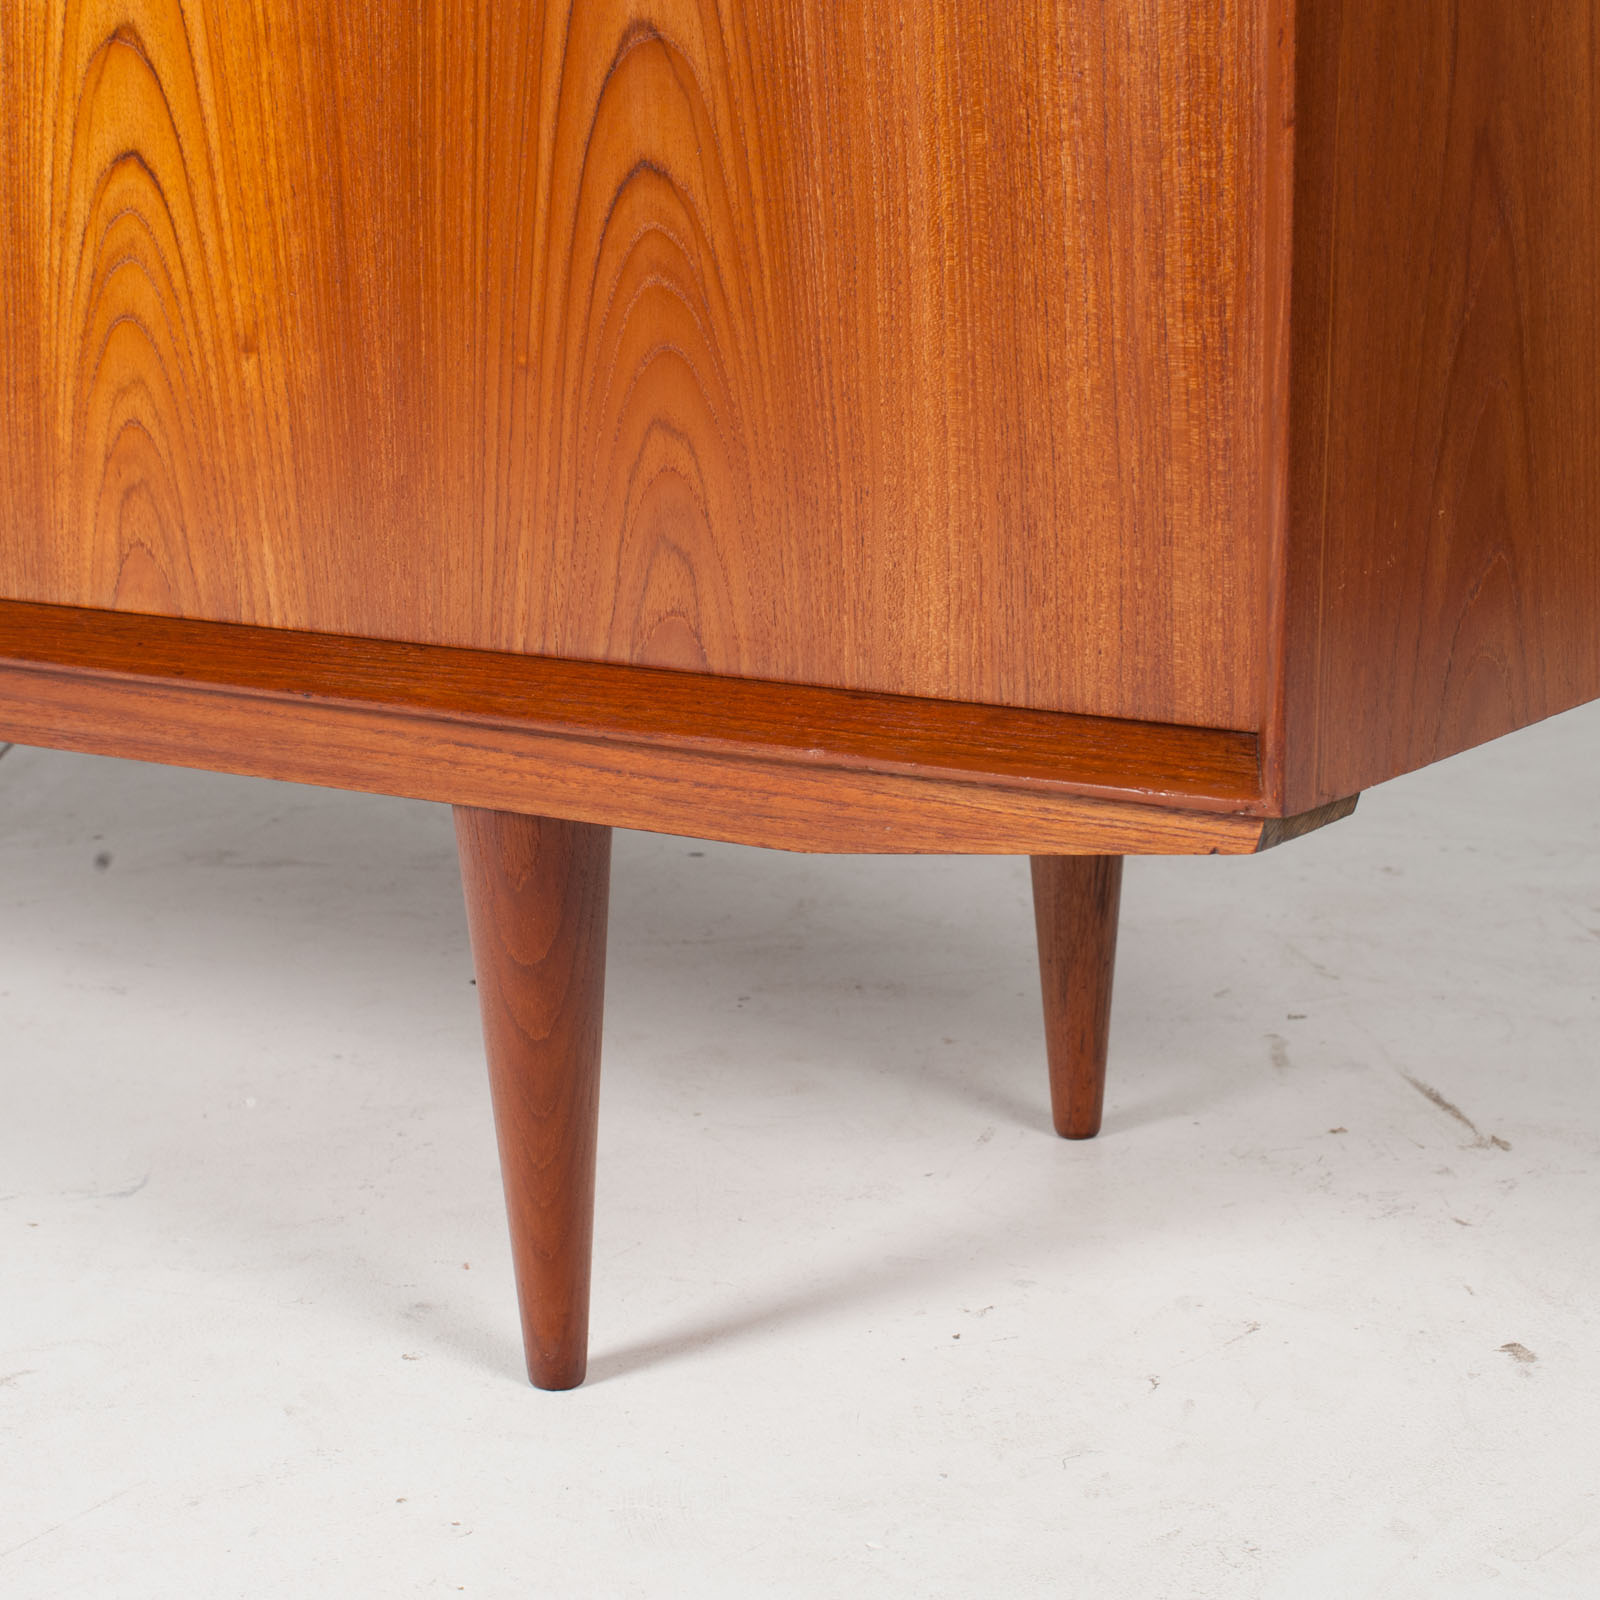 Sideboard By Clause And Son In Teak, 1960s, Denmark10